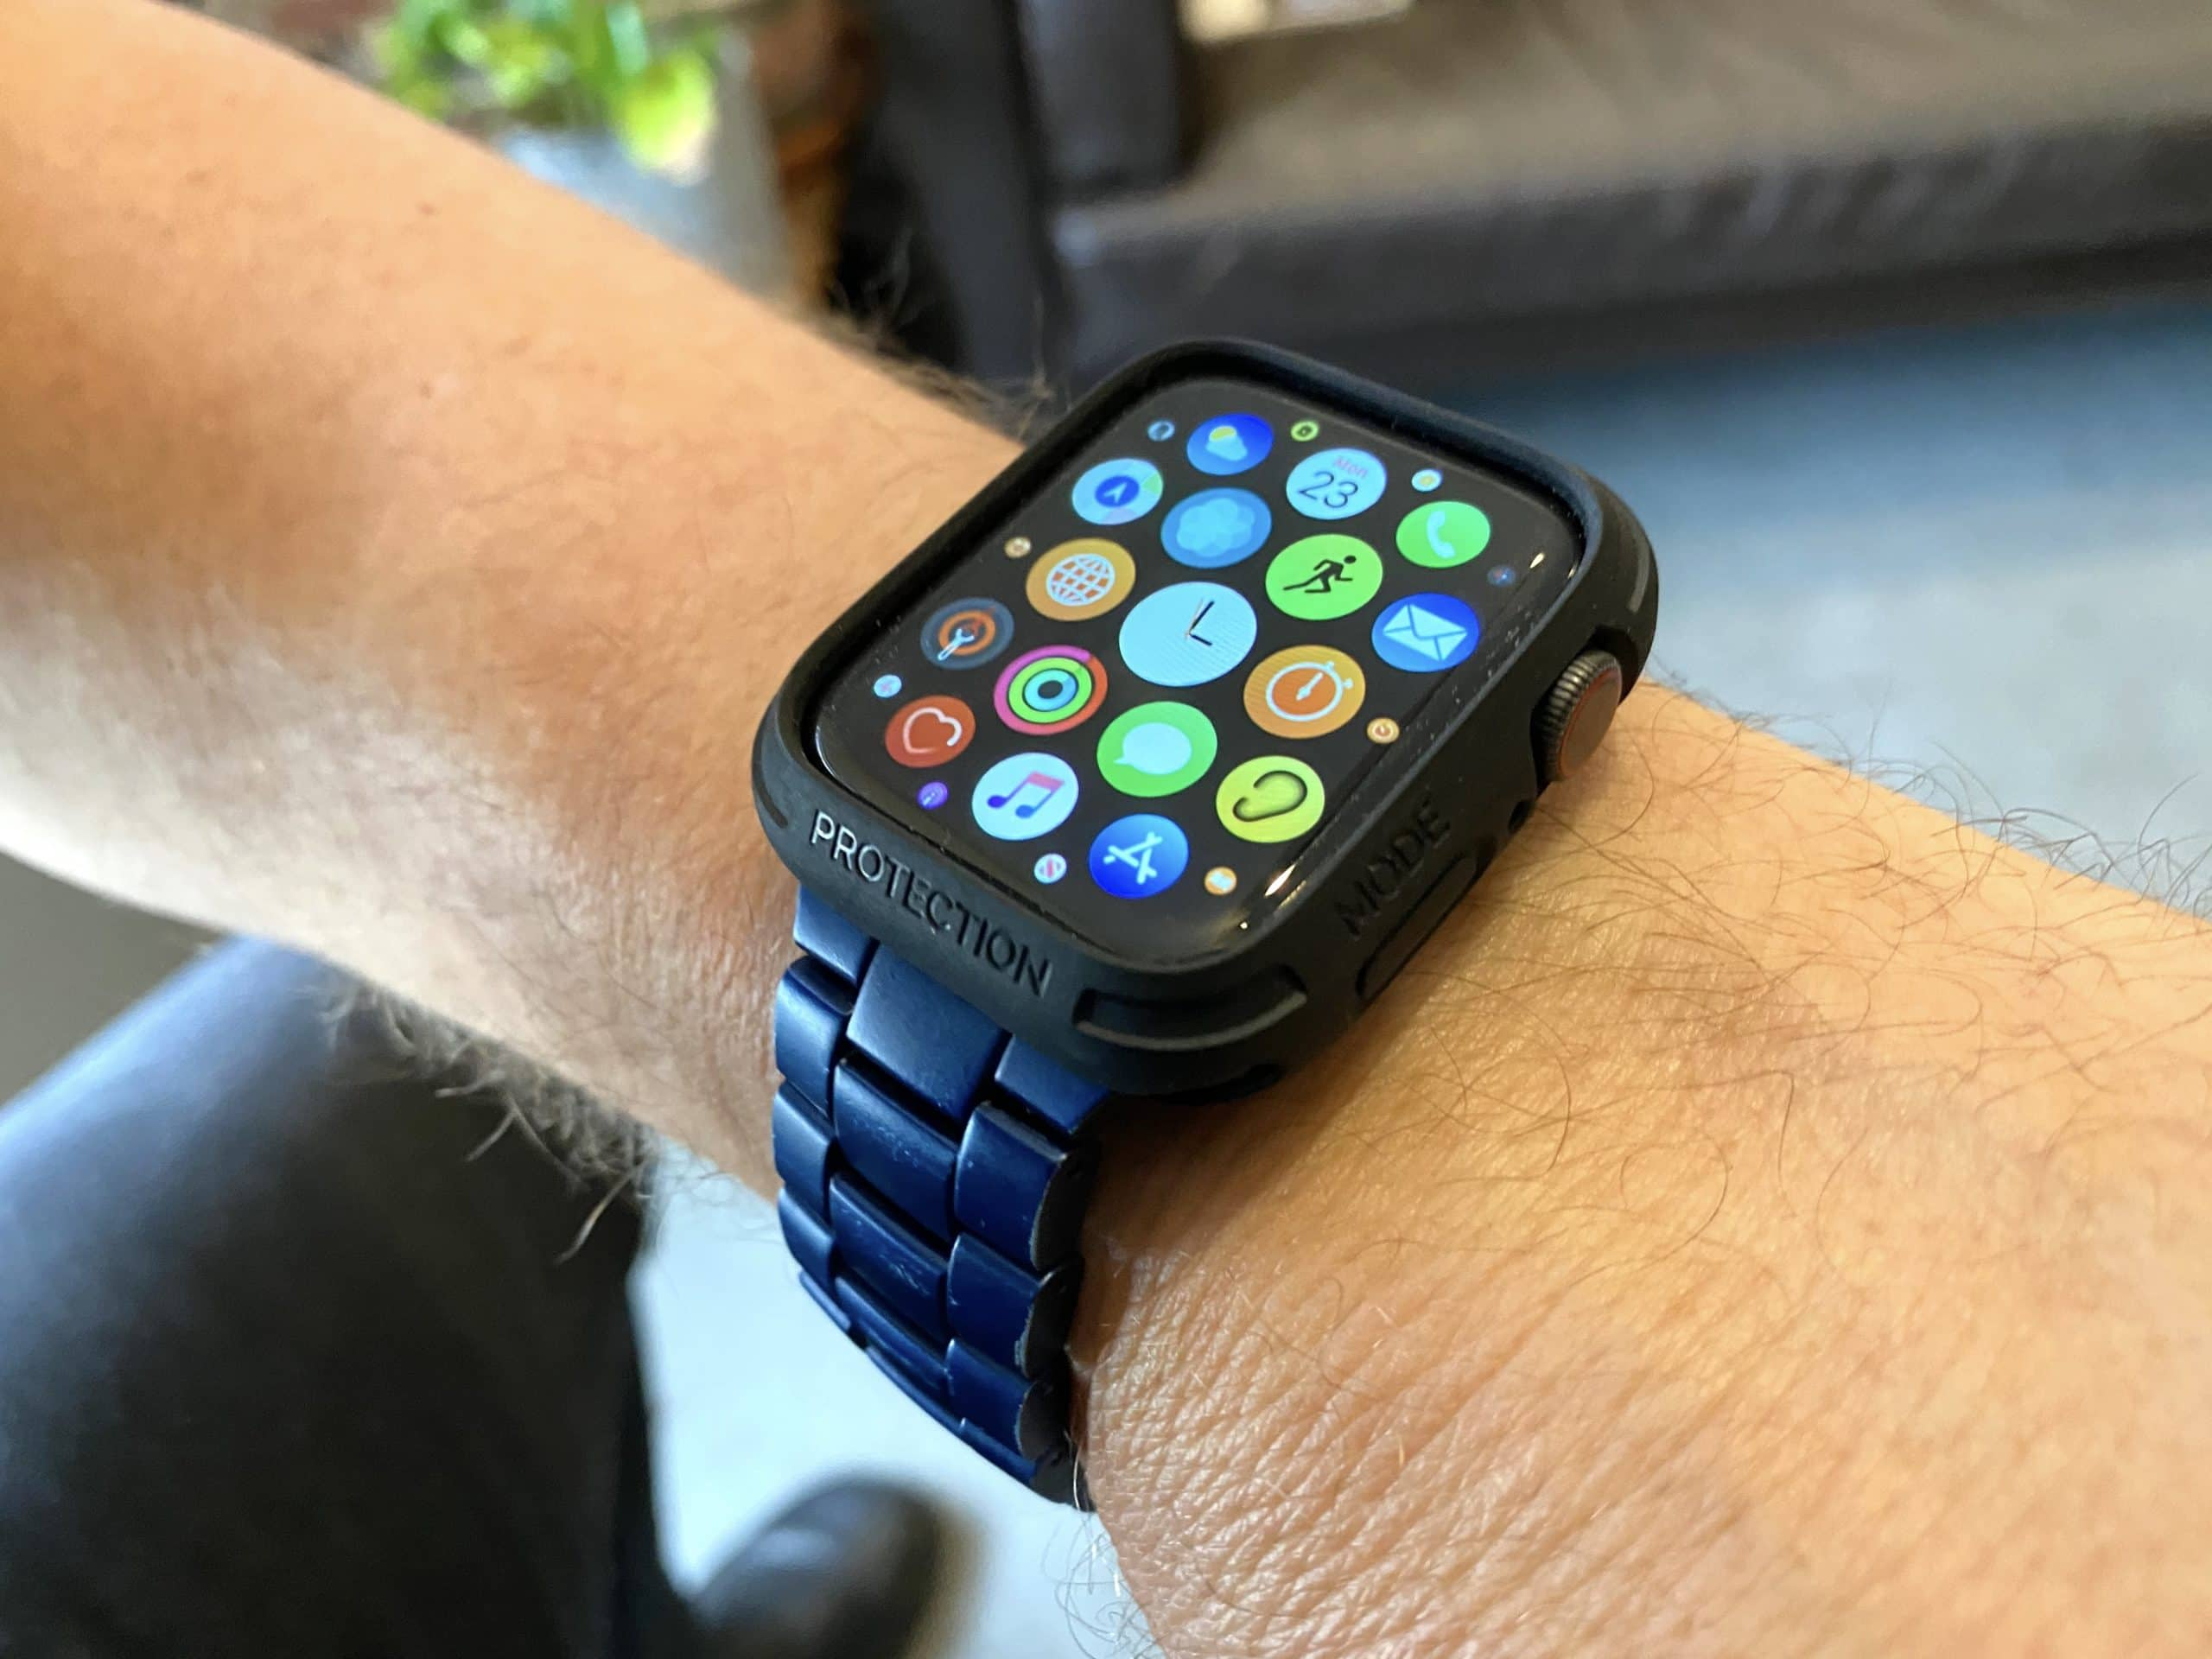 The Elkson Apple Watch bumper case solved a problem that drove me crazy, and it looks good too!